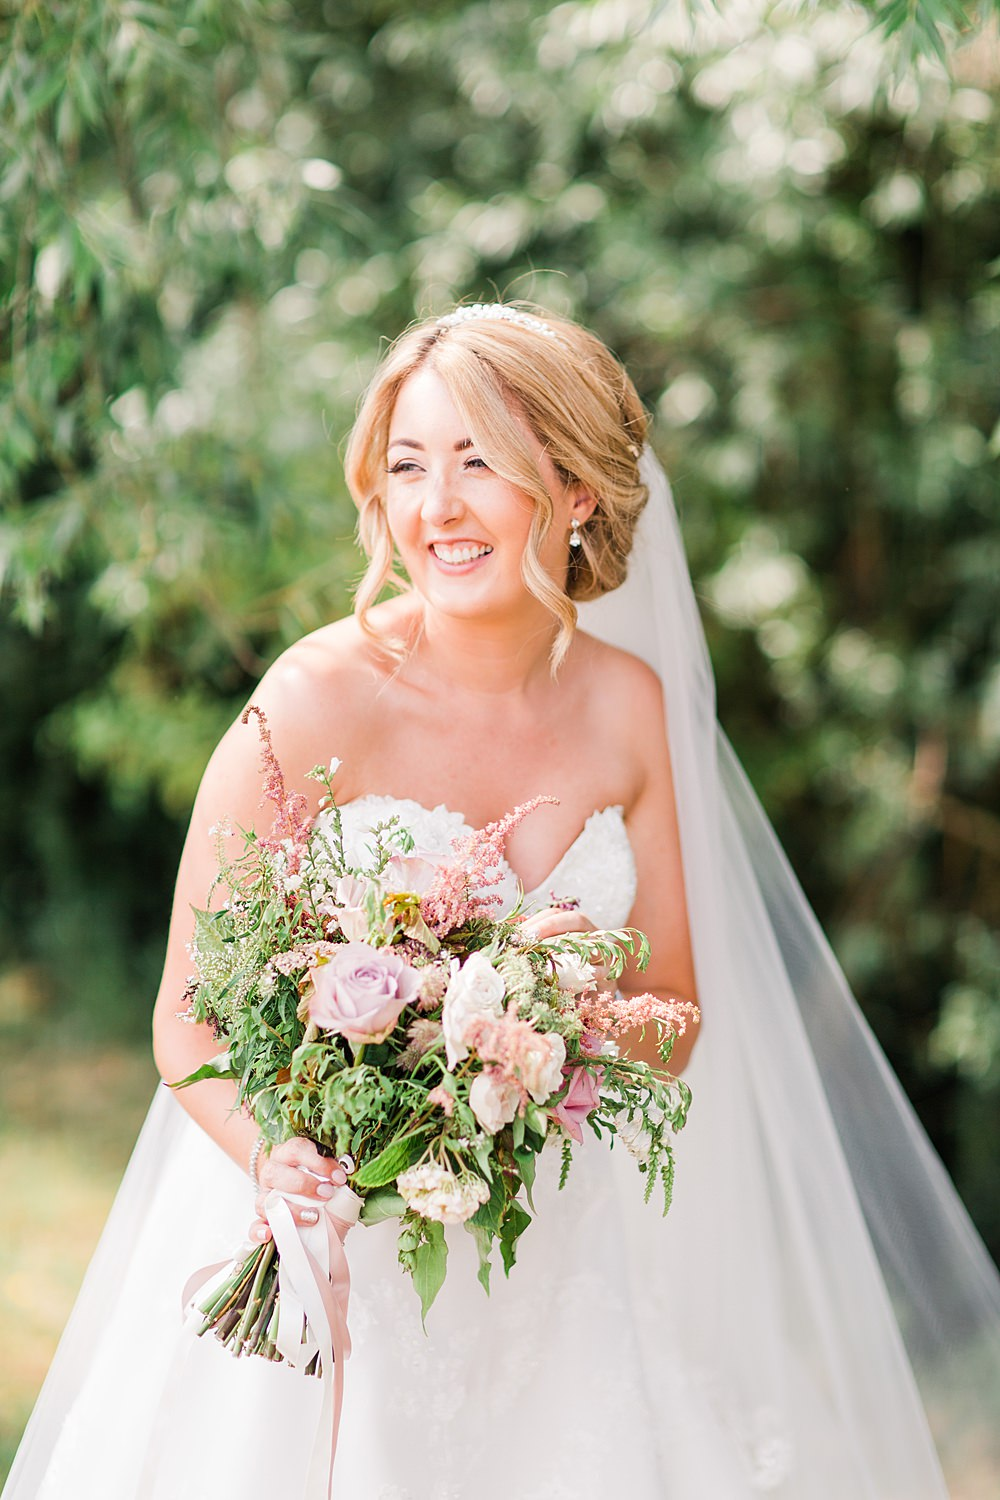 Bouquet Flowers Bride Bridal Pink Rose Astilbe Greenery Foliage Granary Estates Wedding Terri & Lori Fine Art Photography and Film Studio